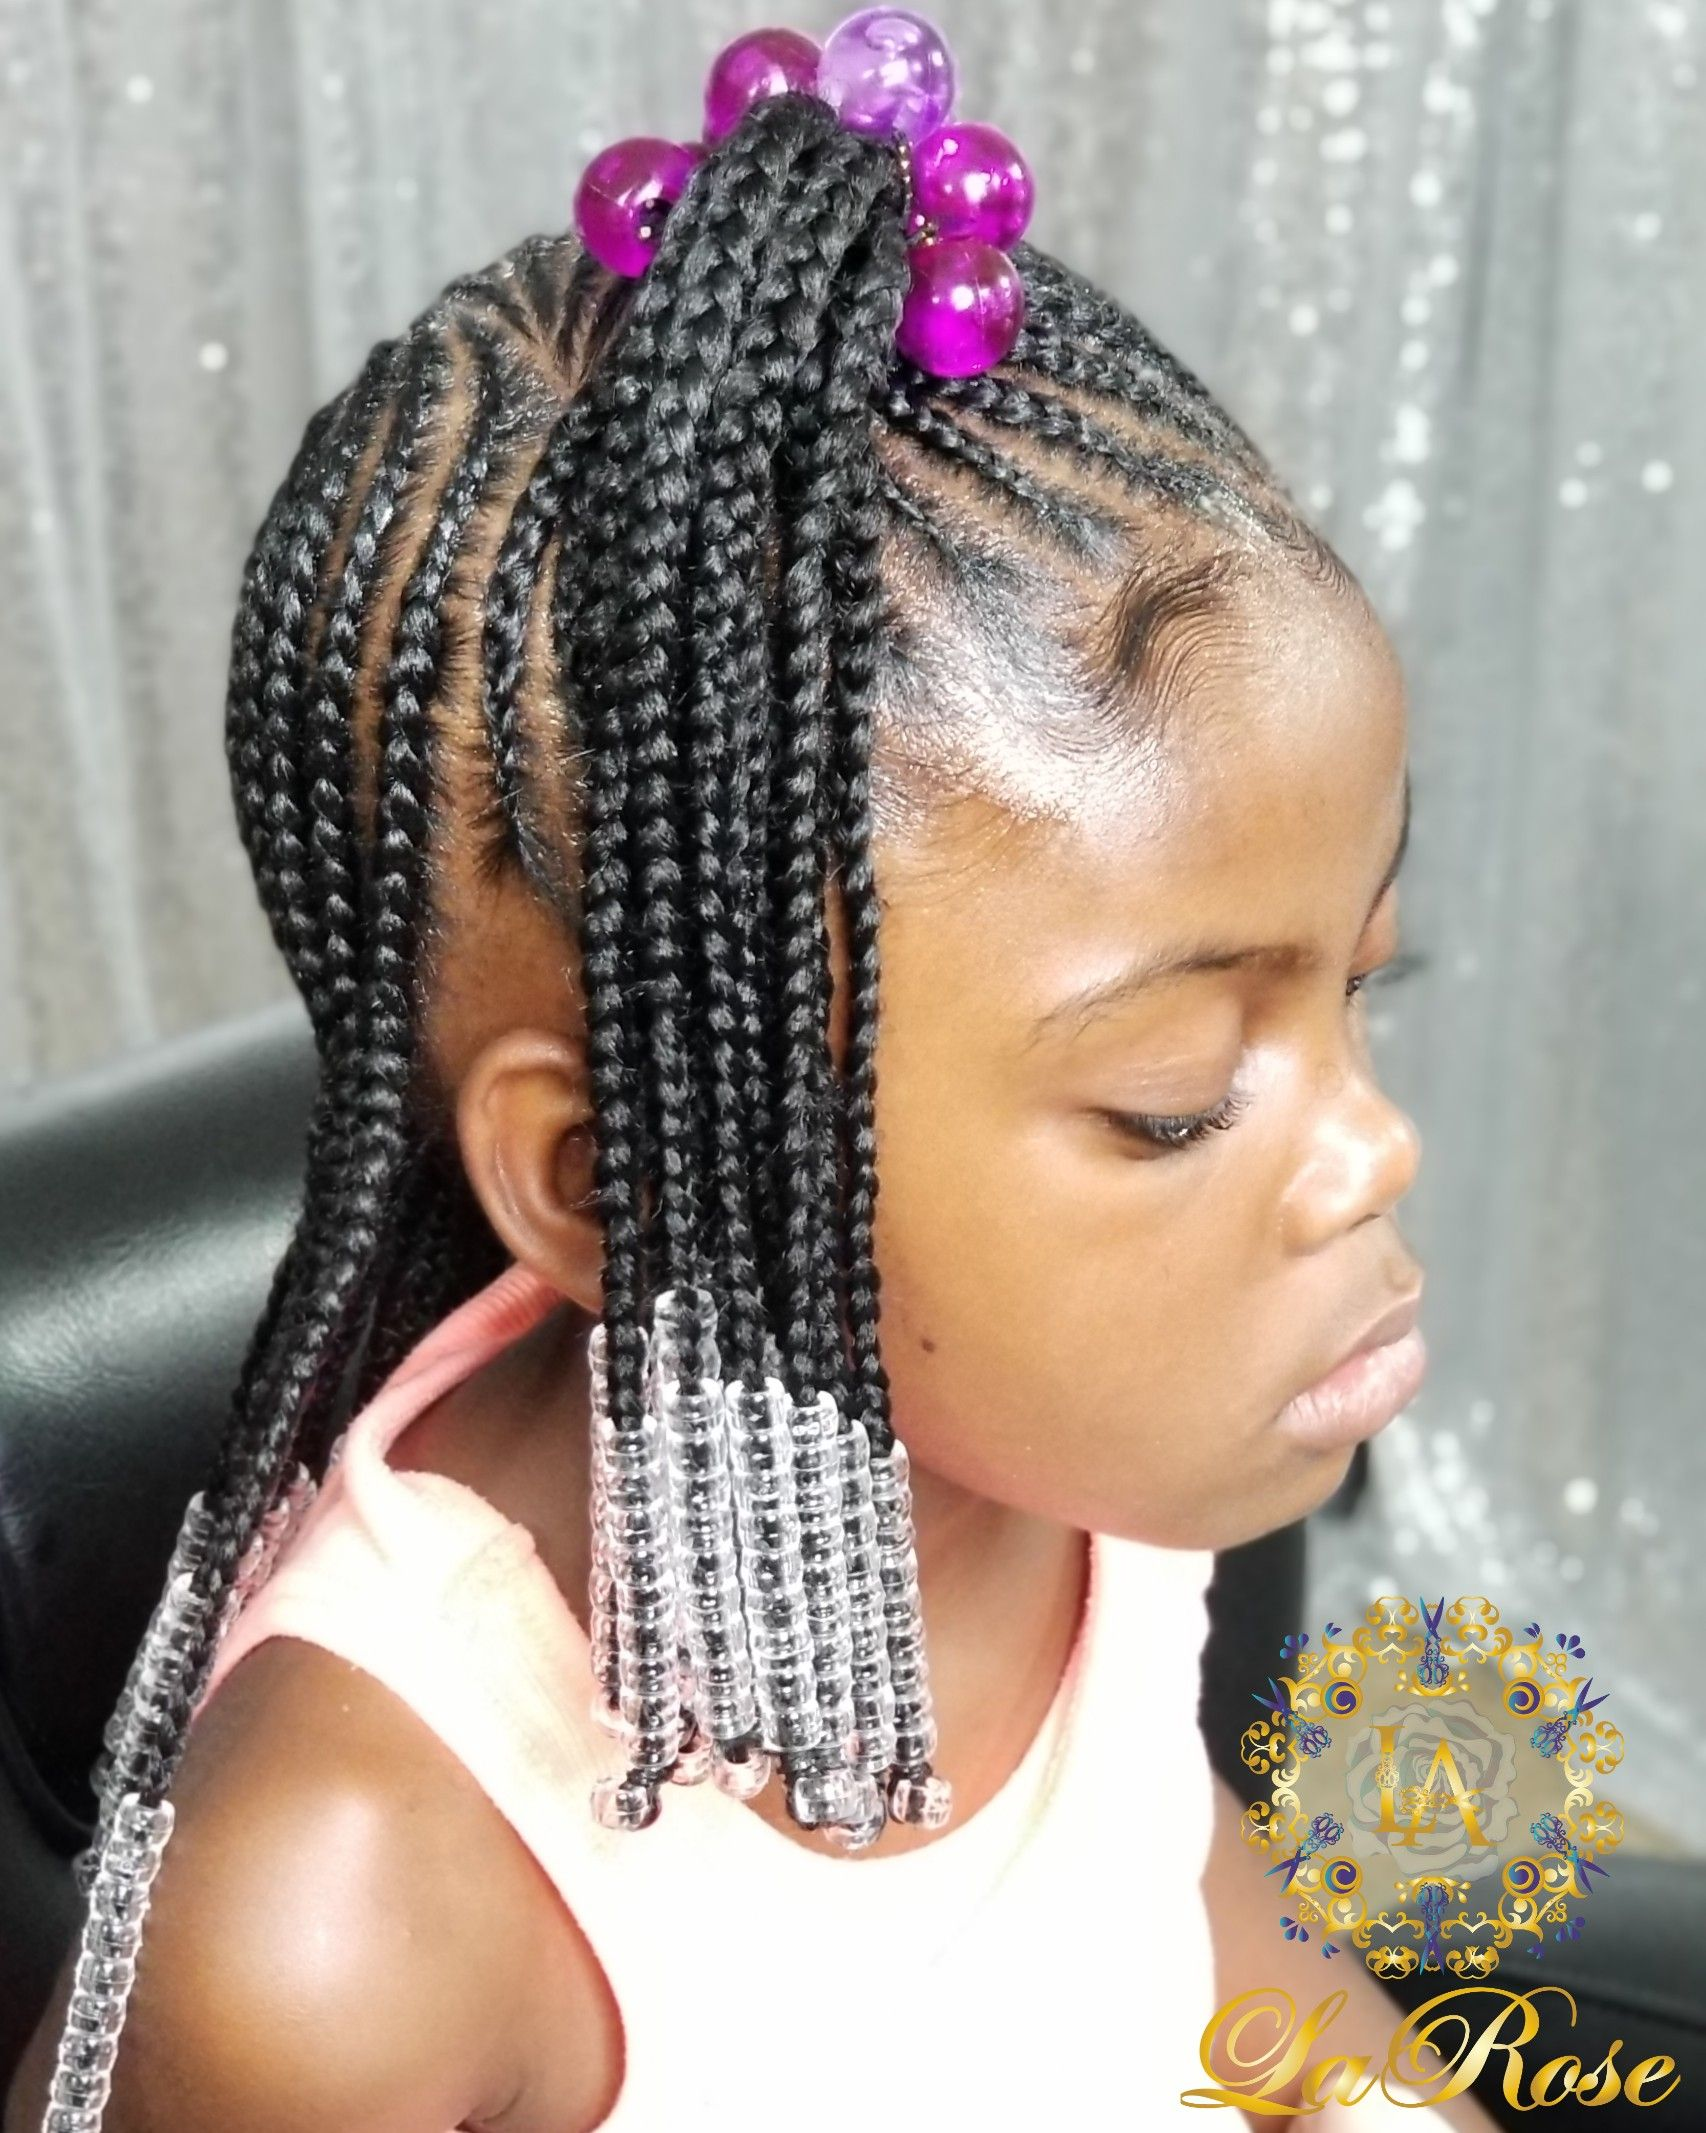 Aniyahp47 Braids For Kids Braided Half Up Crochet Braids For Kids